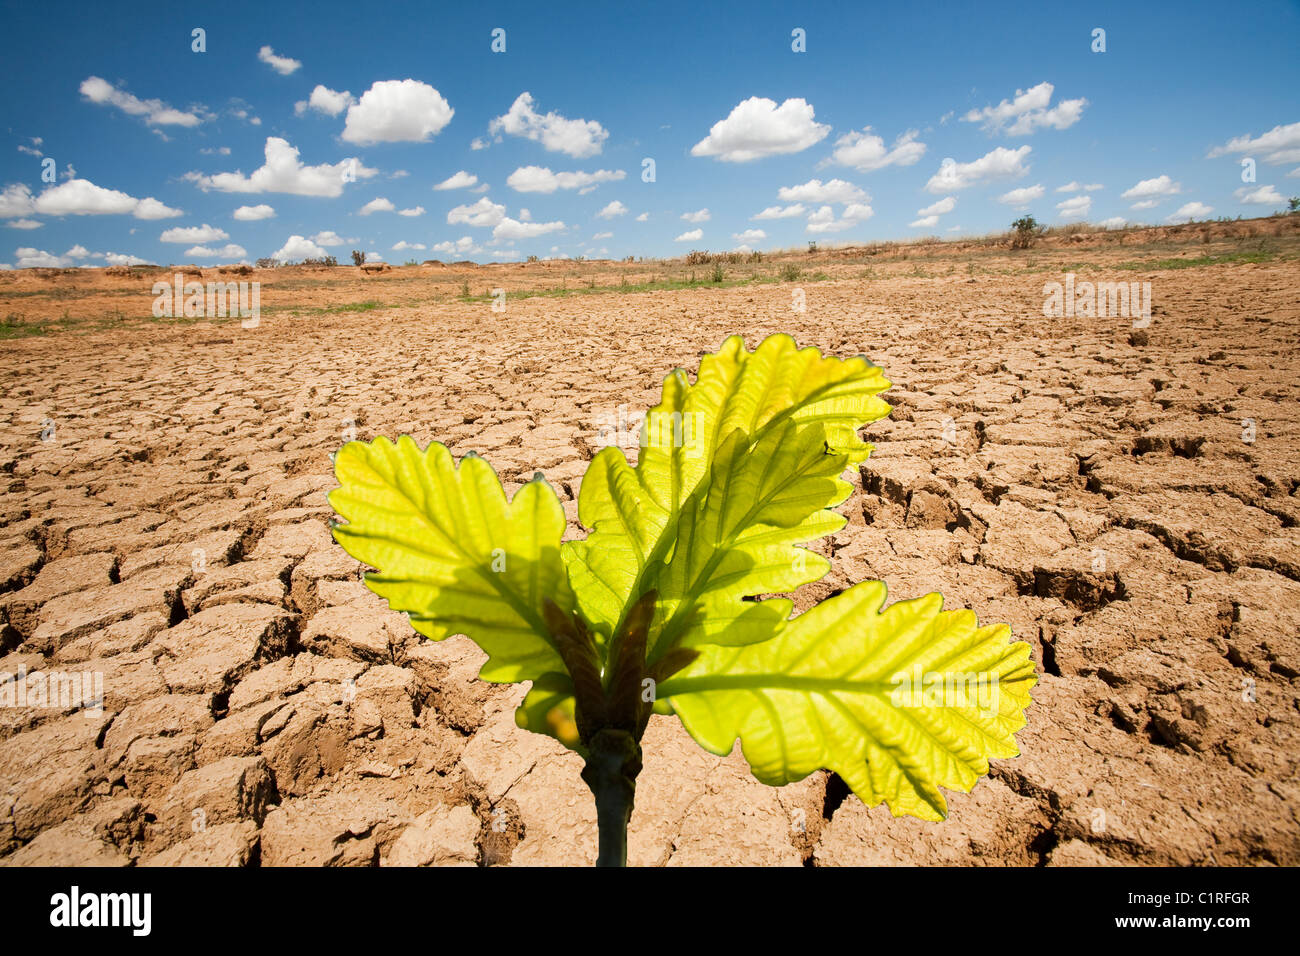 A farmers watering hole on a farm near Shepperton, Victoria, Australia, totally dried up, with Oak leaves - Stock Image